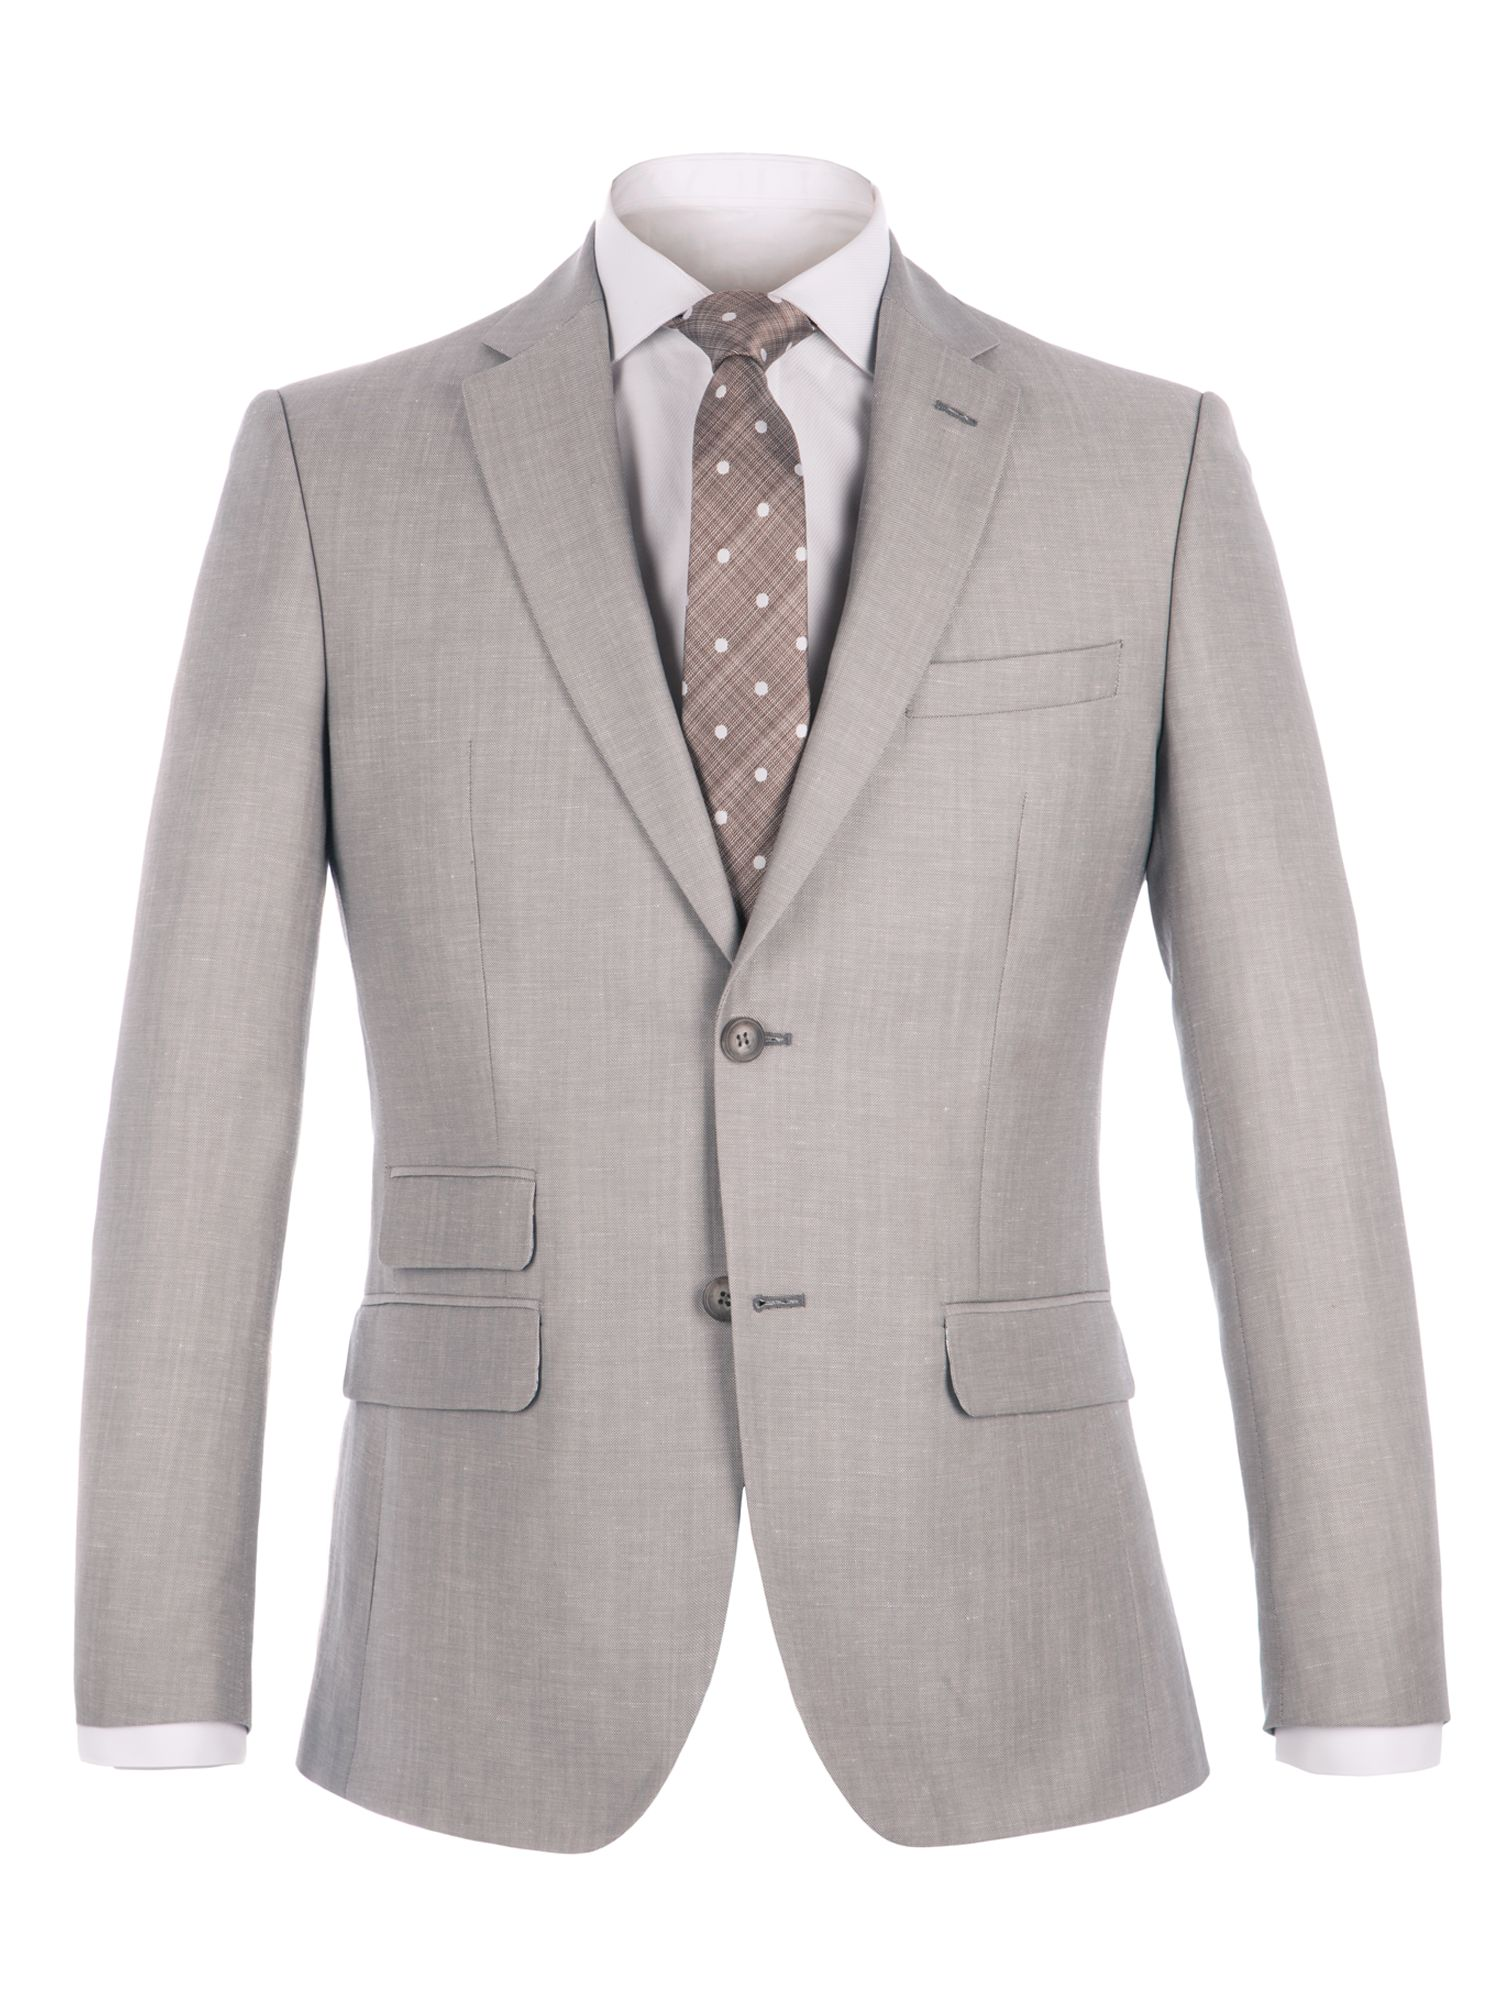 Alexandre of England Men's Alexandre of England Lombard Oatmeal Linen Blend Jacket, Oatmeal